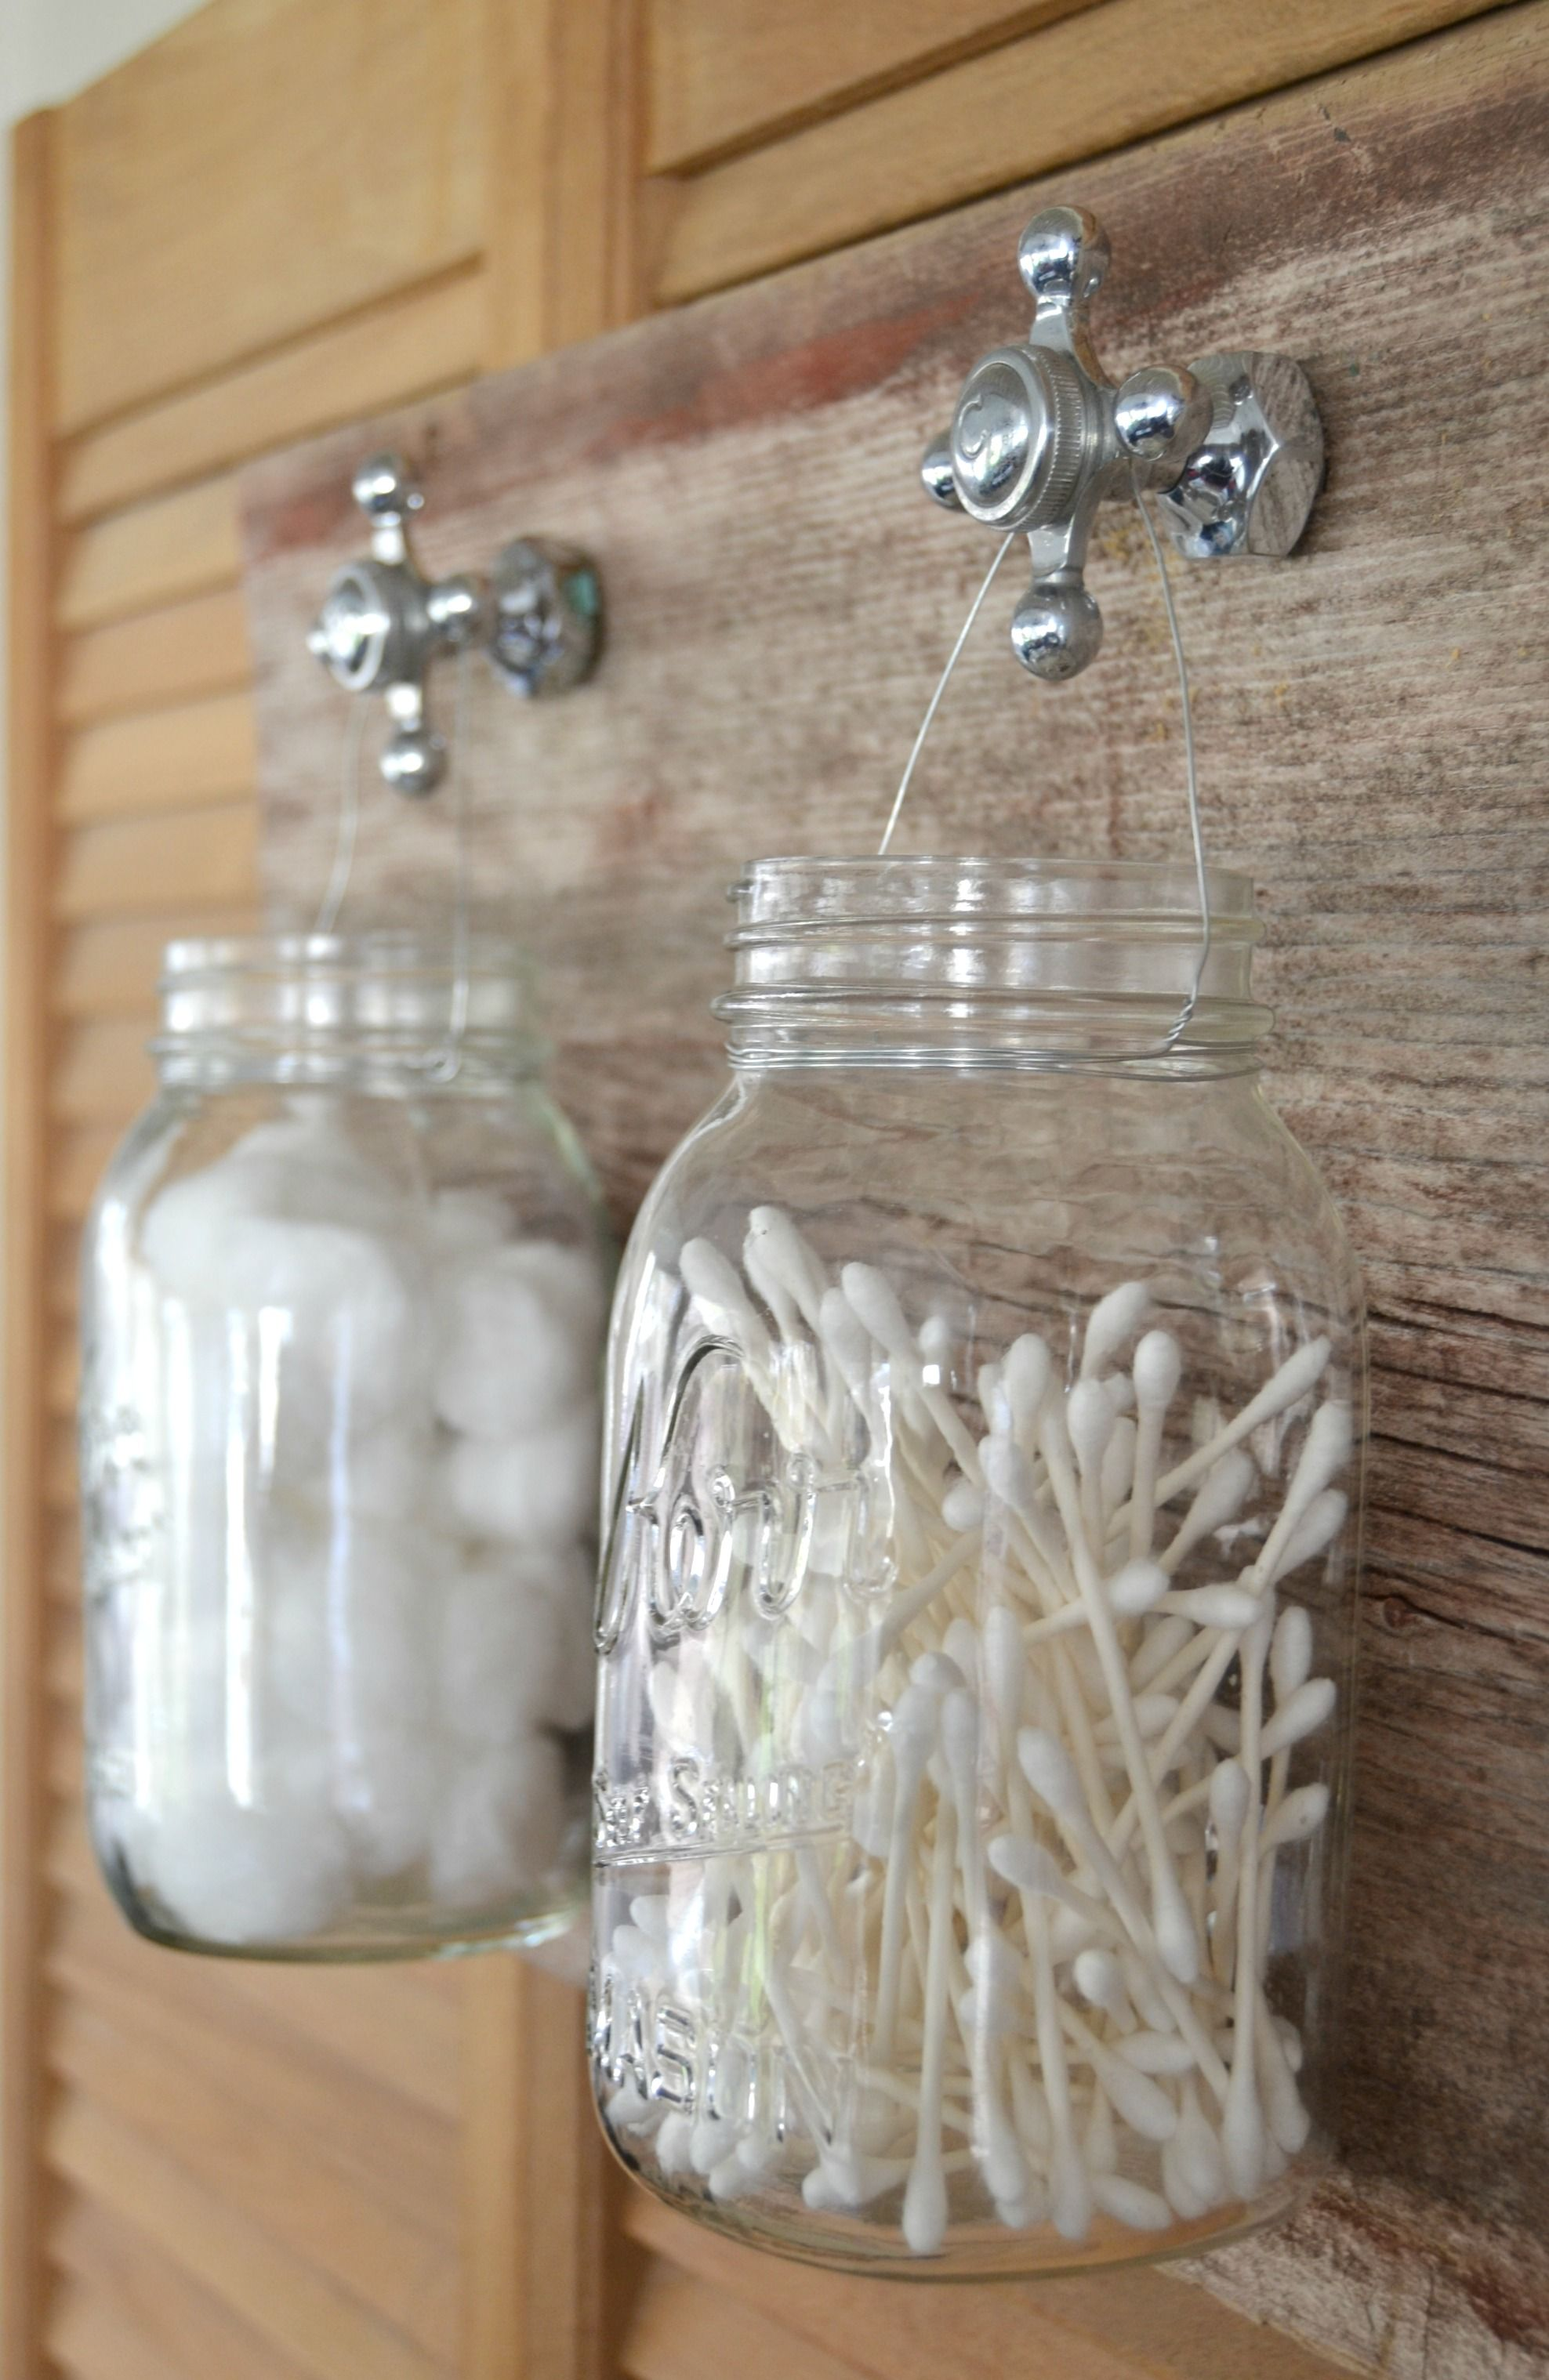 diy recycled bathroom organizer | diy recycle